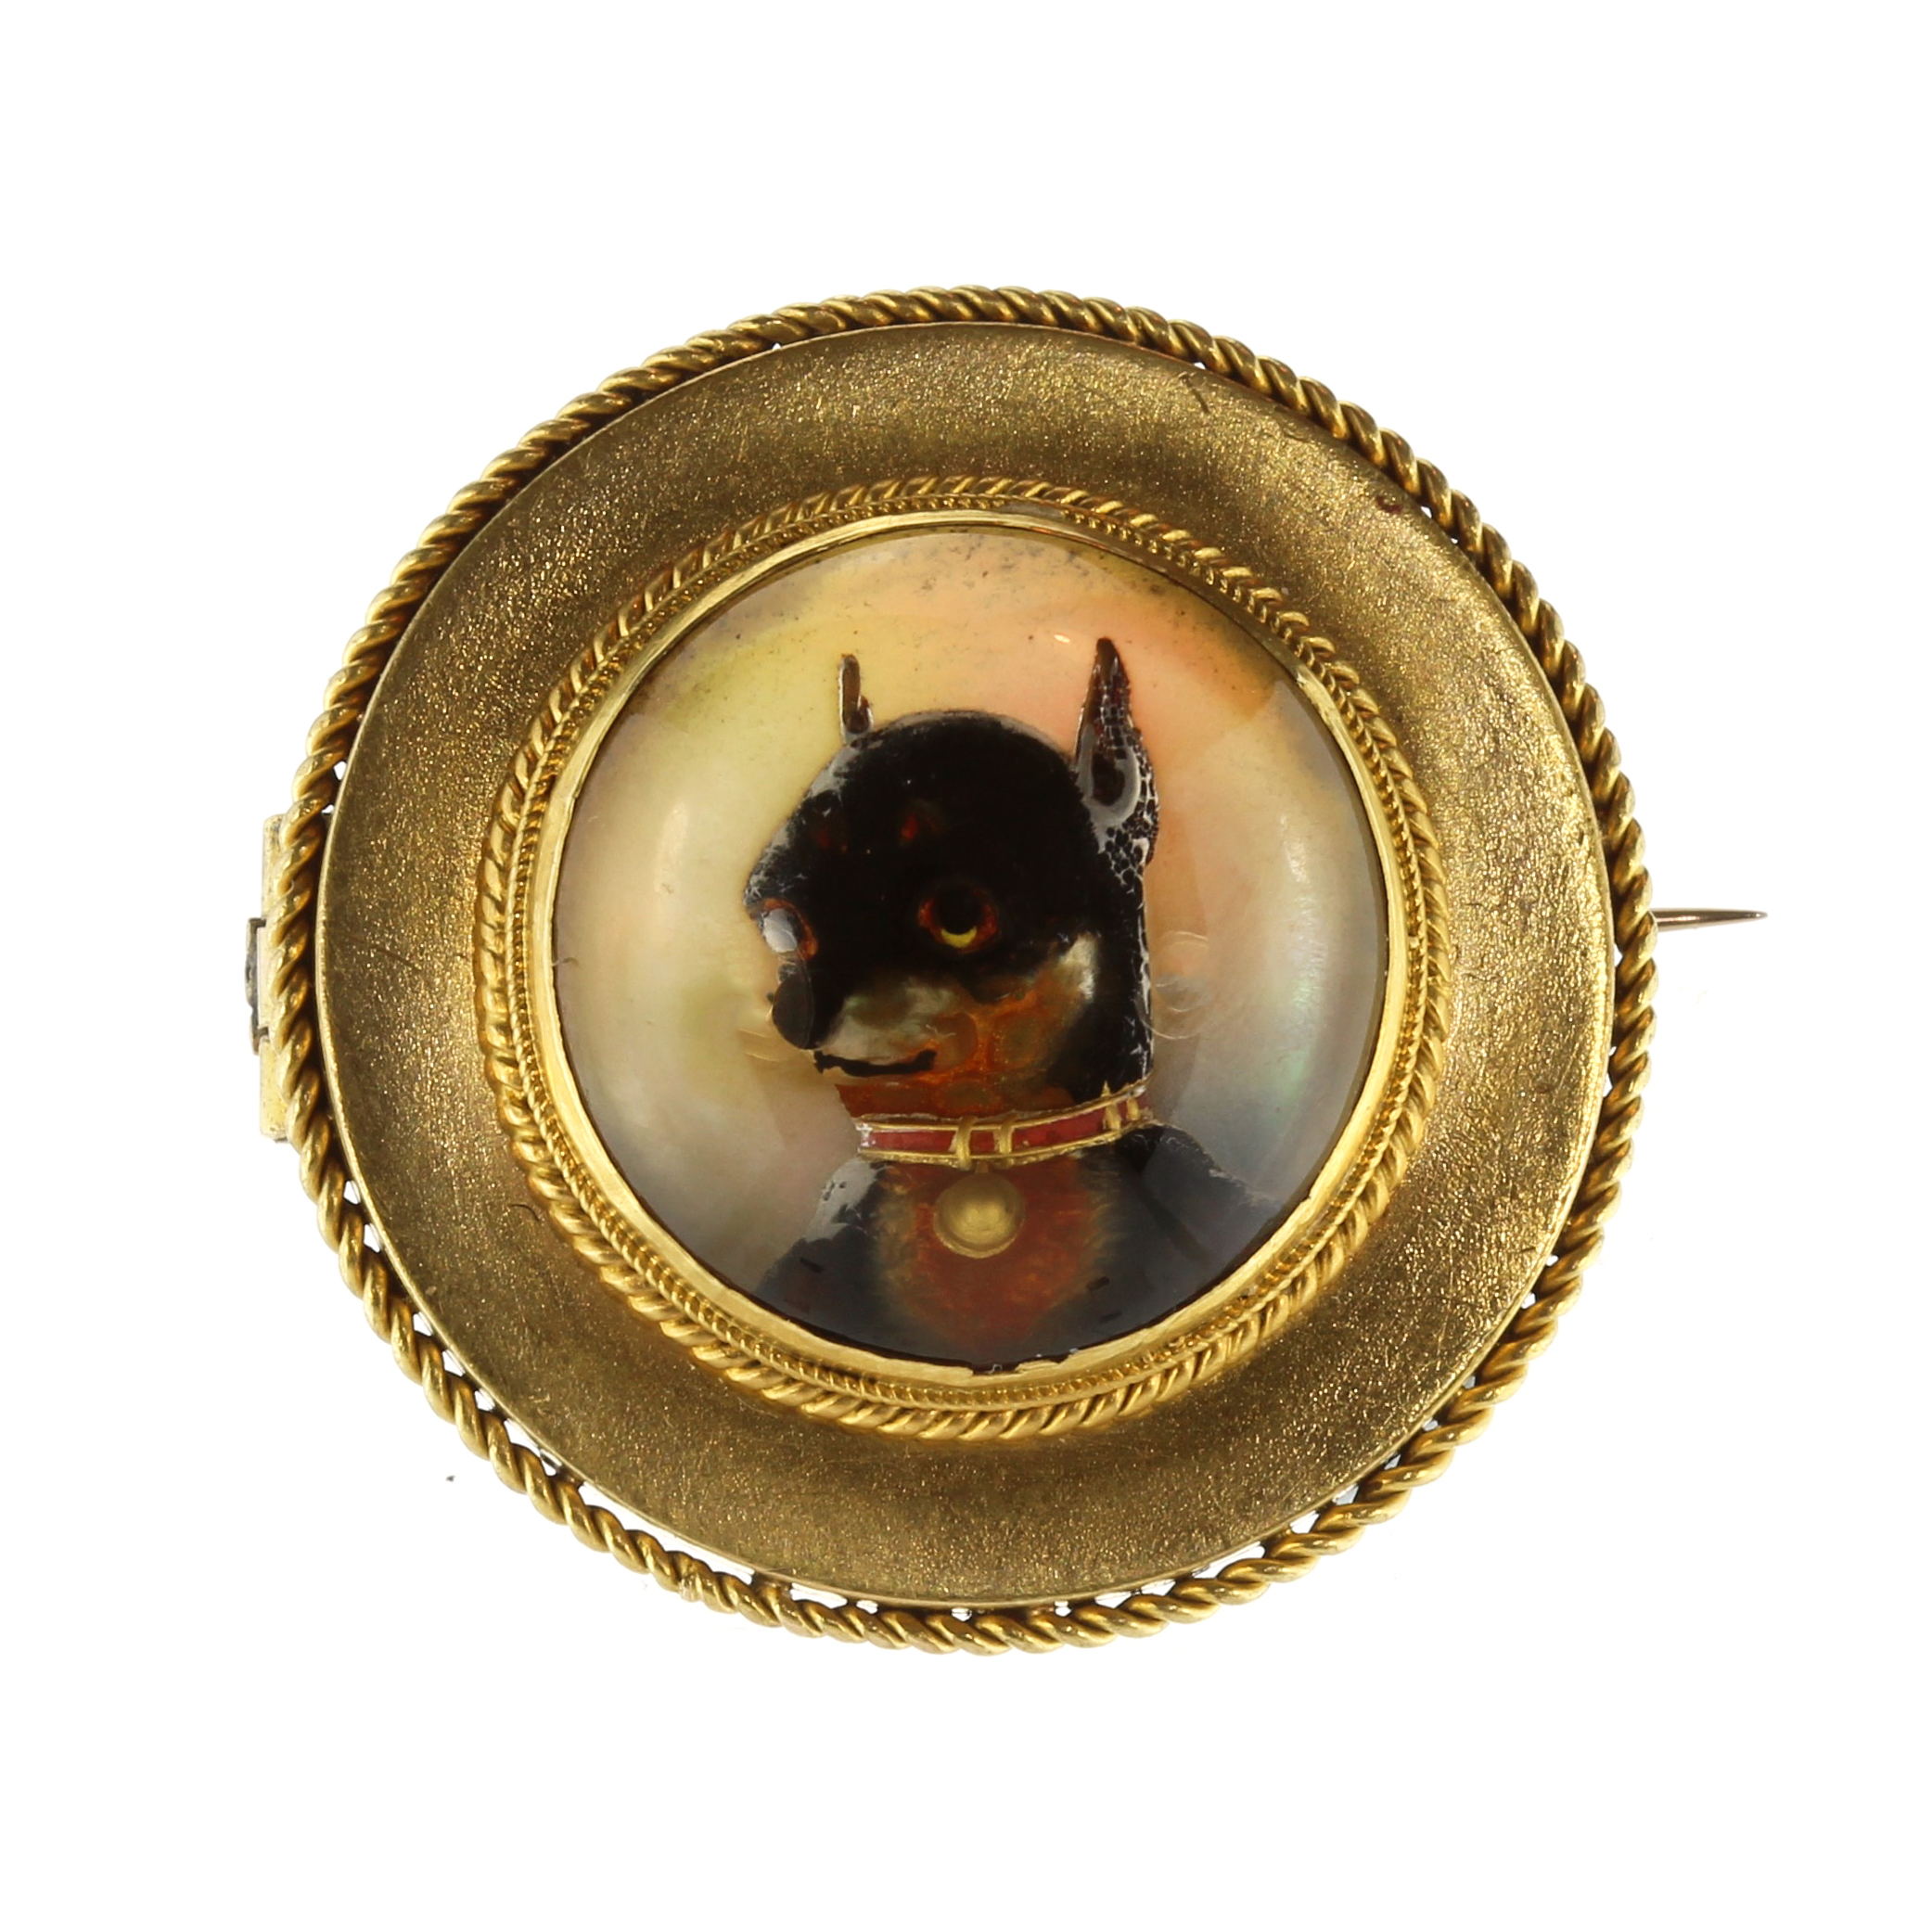 Los 23 - An antique Essex crystal / reverse carved intaglio dog brooch in high carat yellow gold set with a